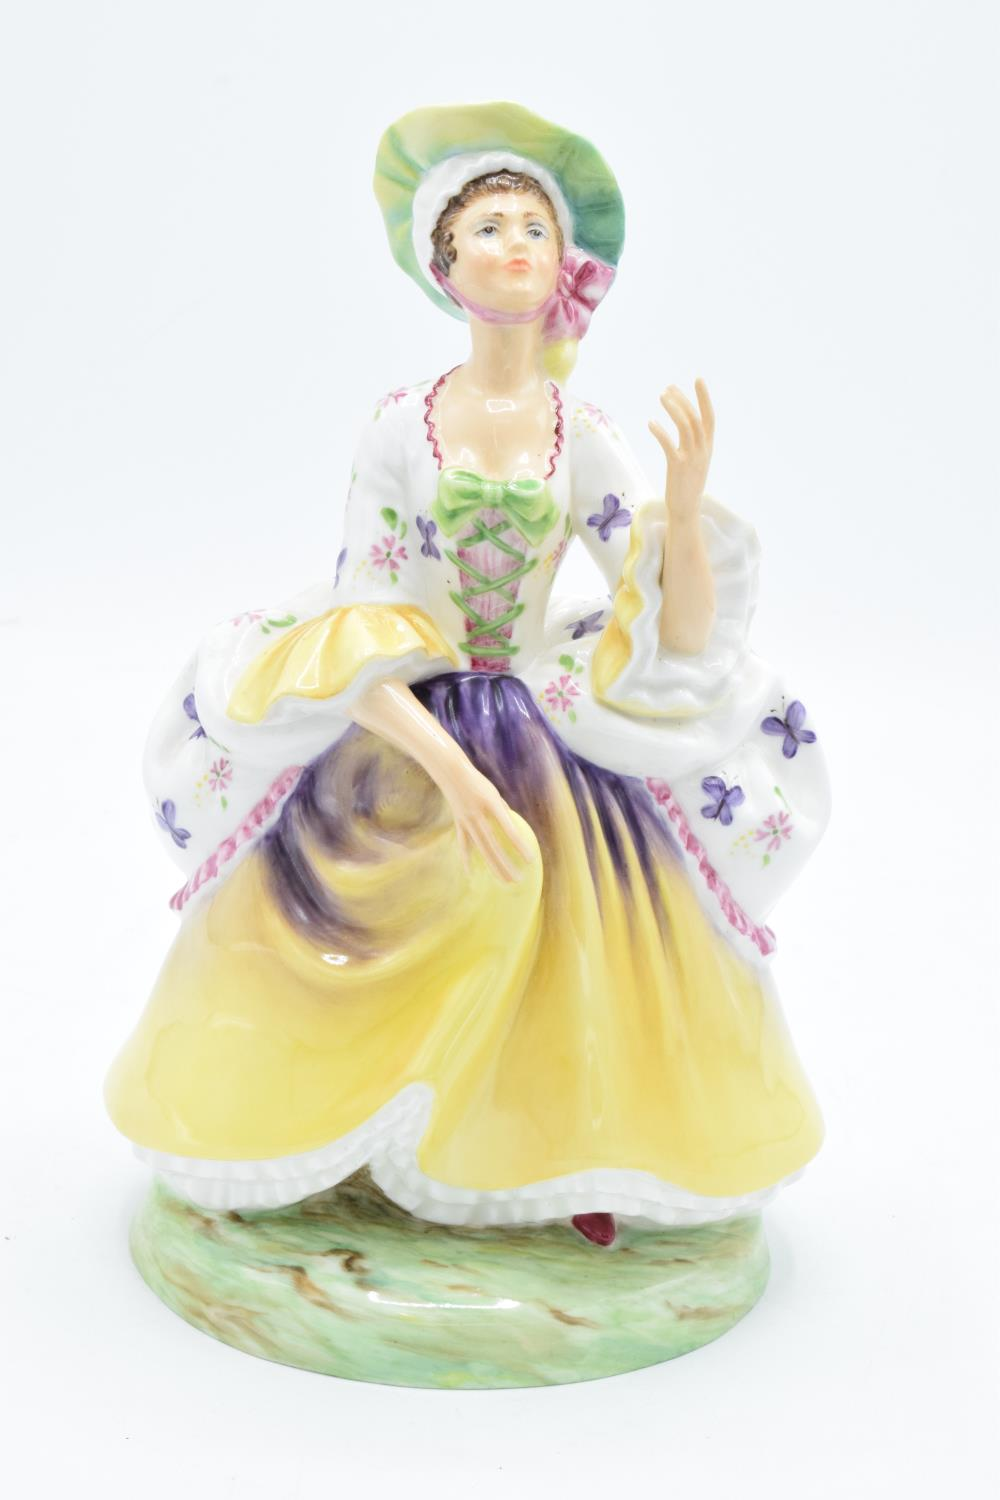 Peggy Davies Janus Pottery lady figure Peg Woffington from The Illustrious Ladies of the Stage